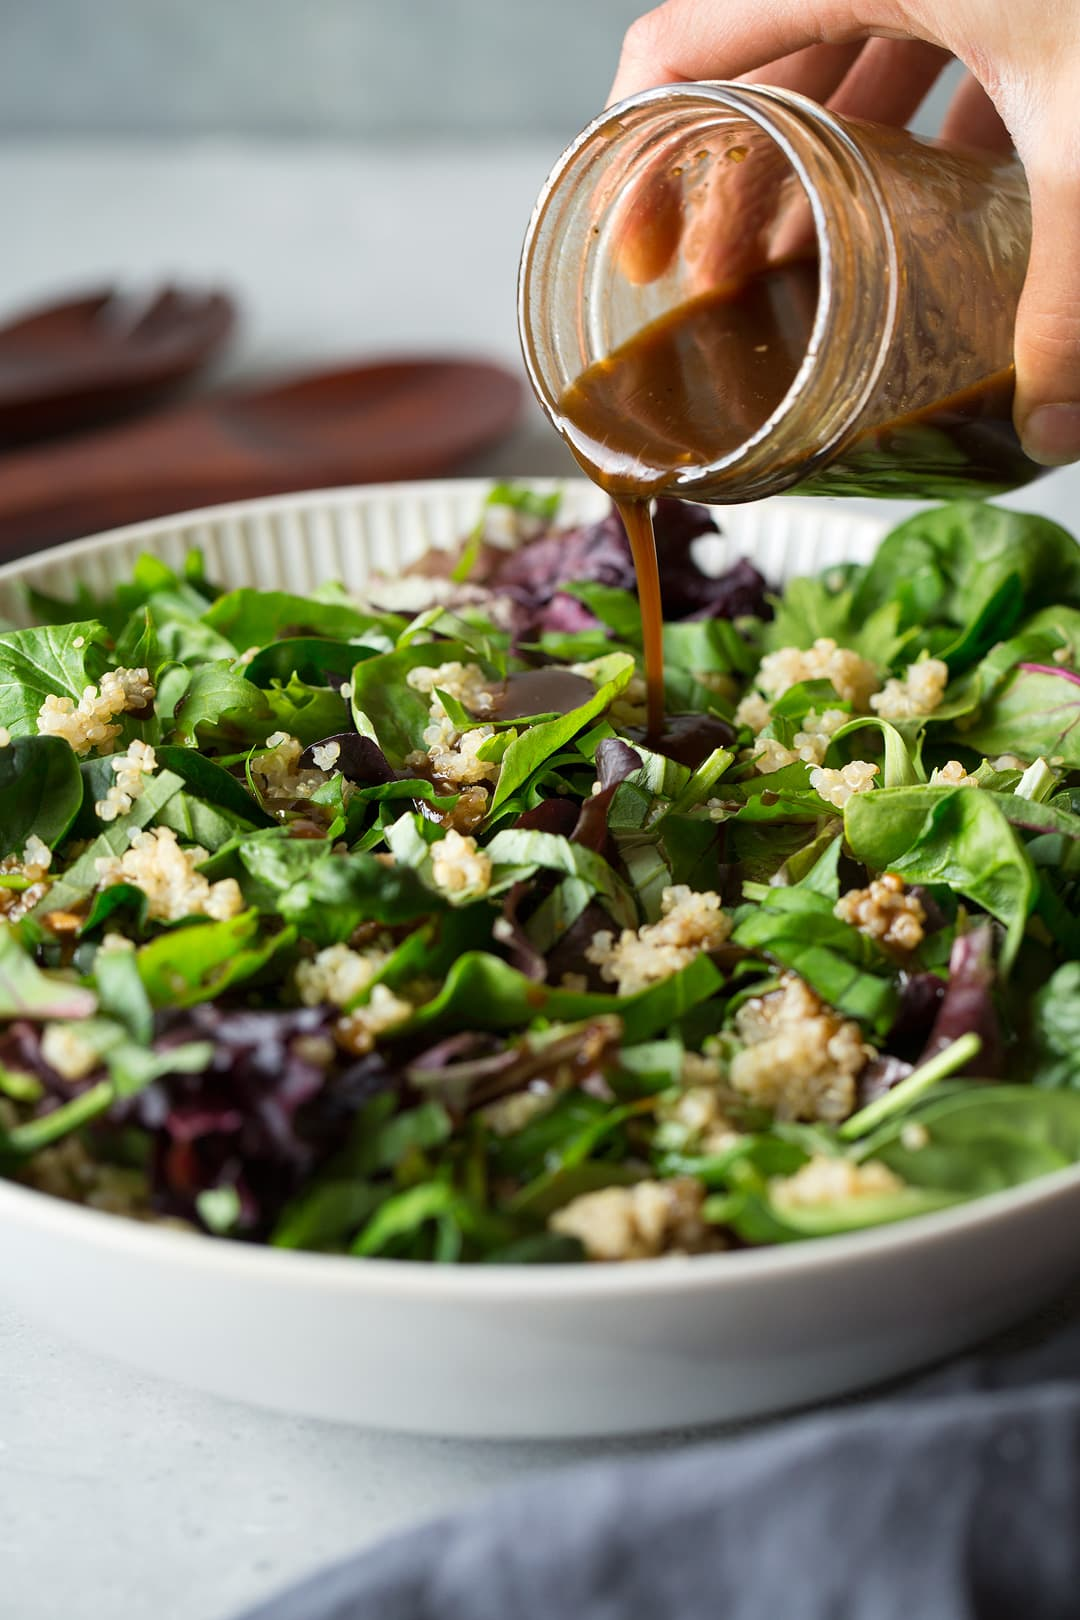 Sun Dried Tomato Spring Salad with Balsamic Vinaigrette